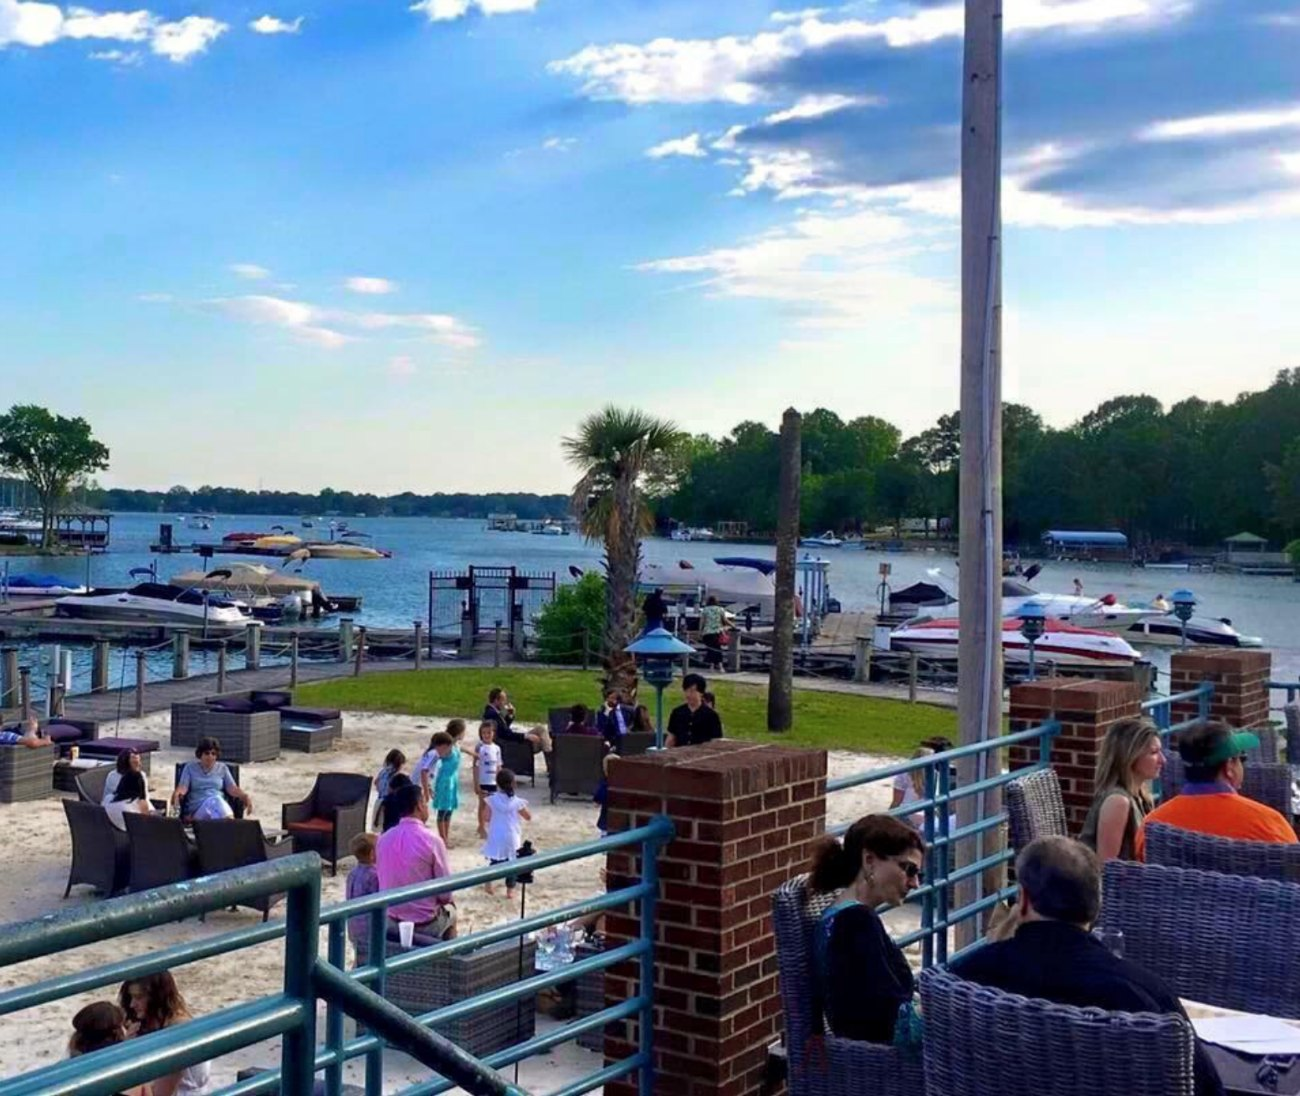 5 best places for waterside cocktails within 30 miles of Uptown